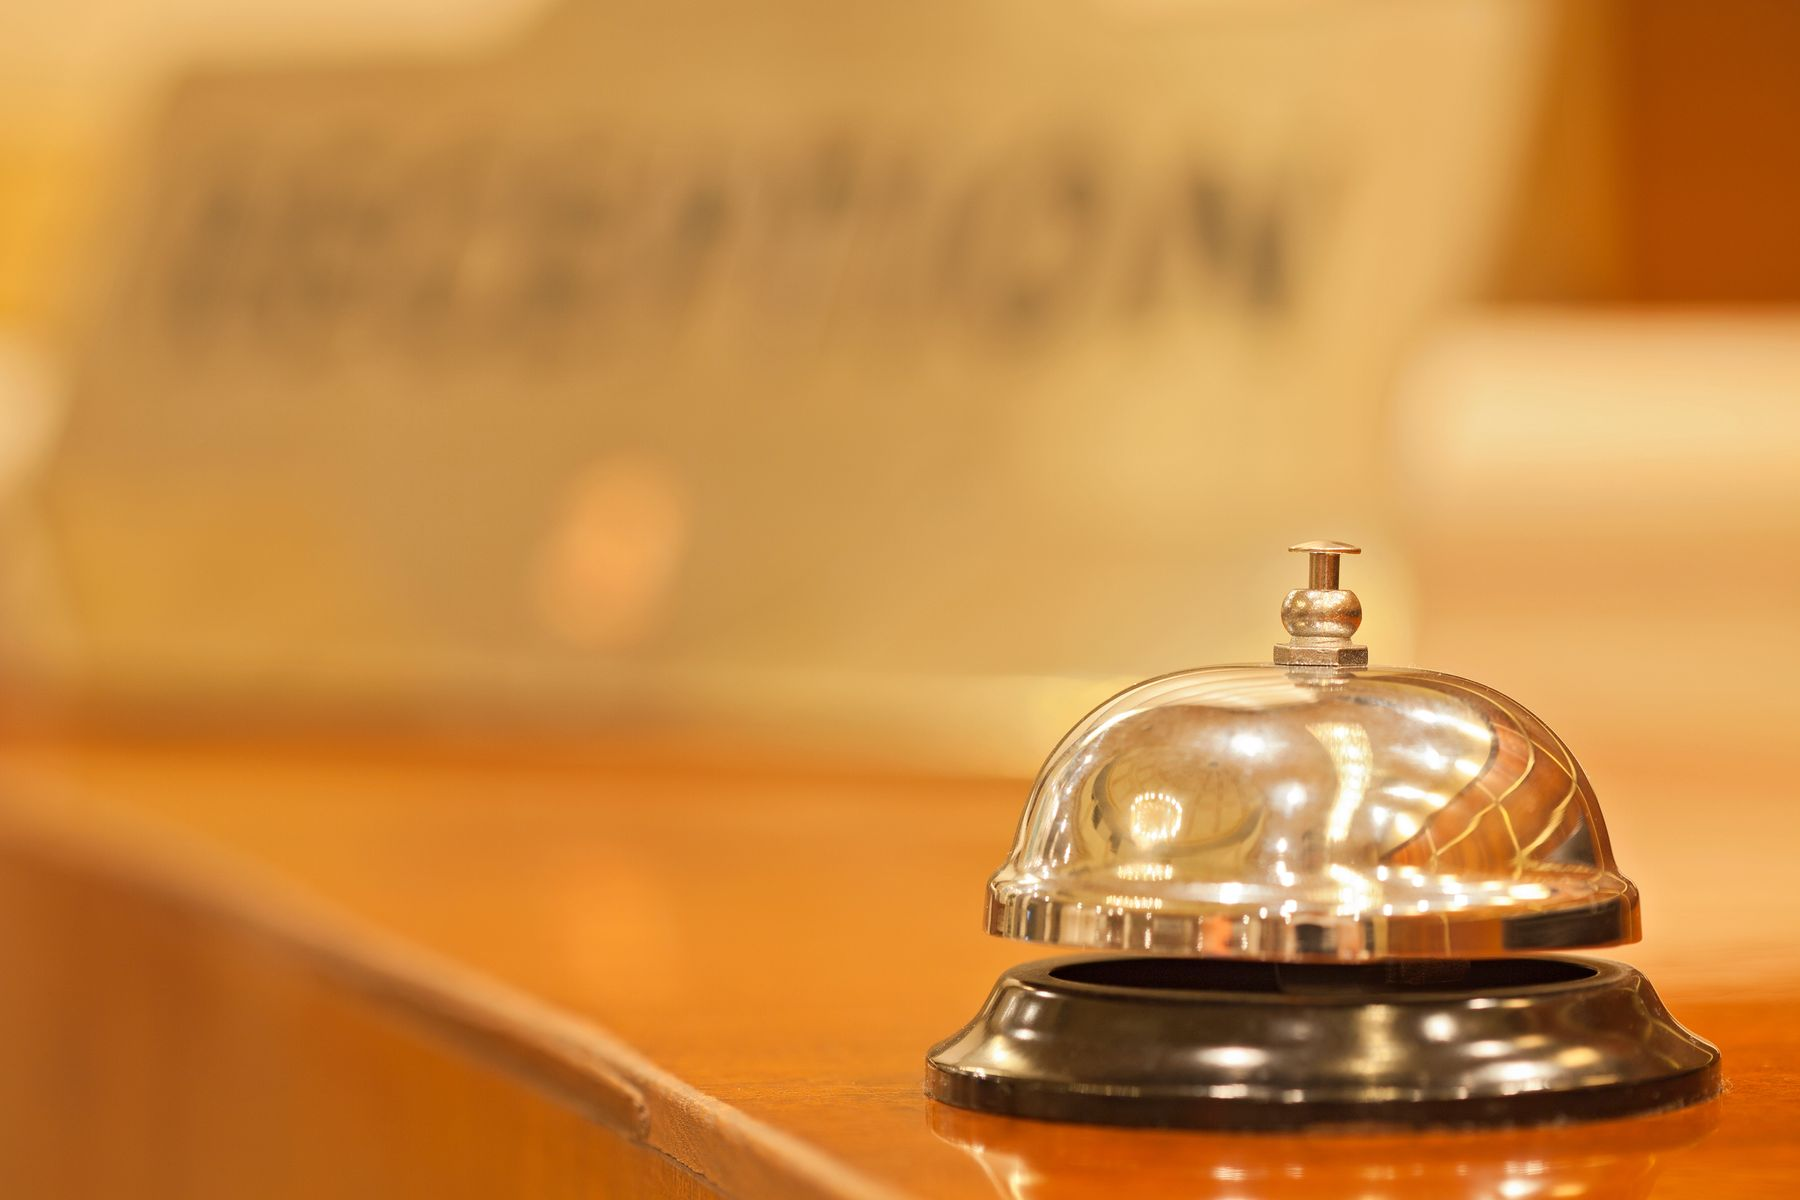 A hotel reception bell